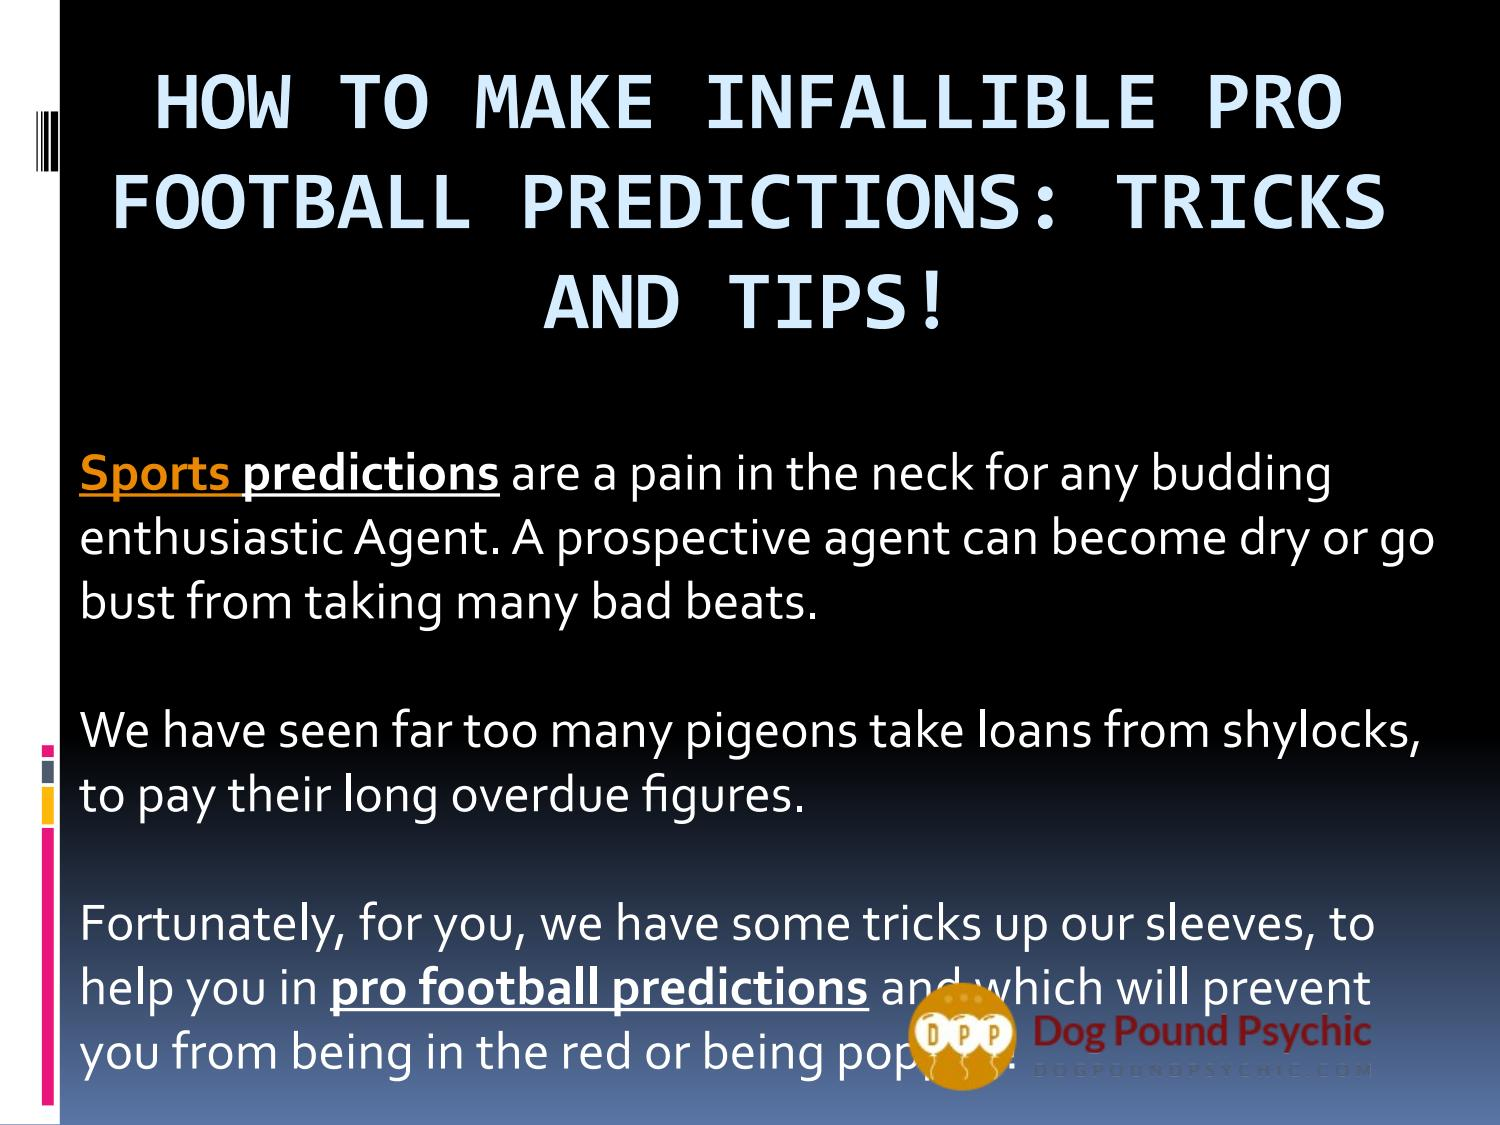 How to make pro football predictions by arloKK - issuu